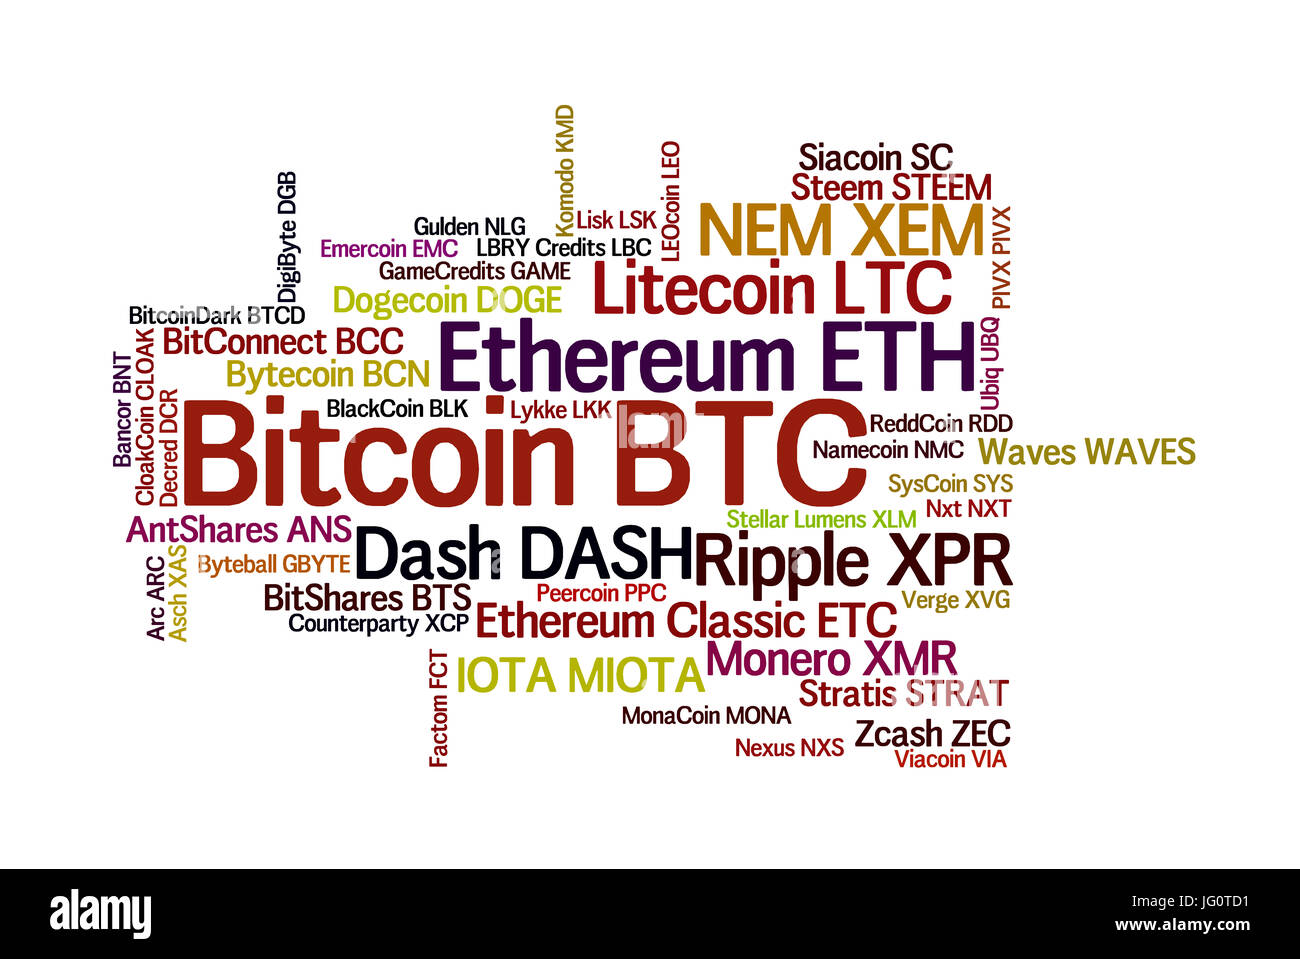 Crypto-currencies with a capitalization of more than $ 100 million. The font size roughly shows the market share Stock Photo